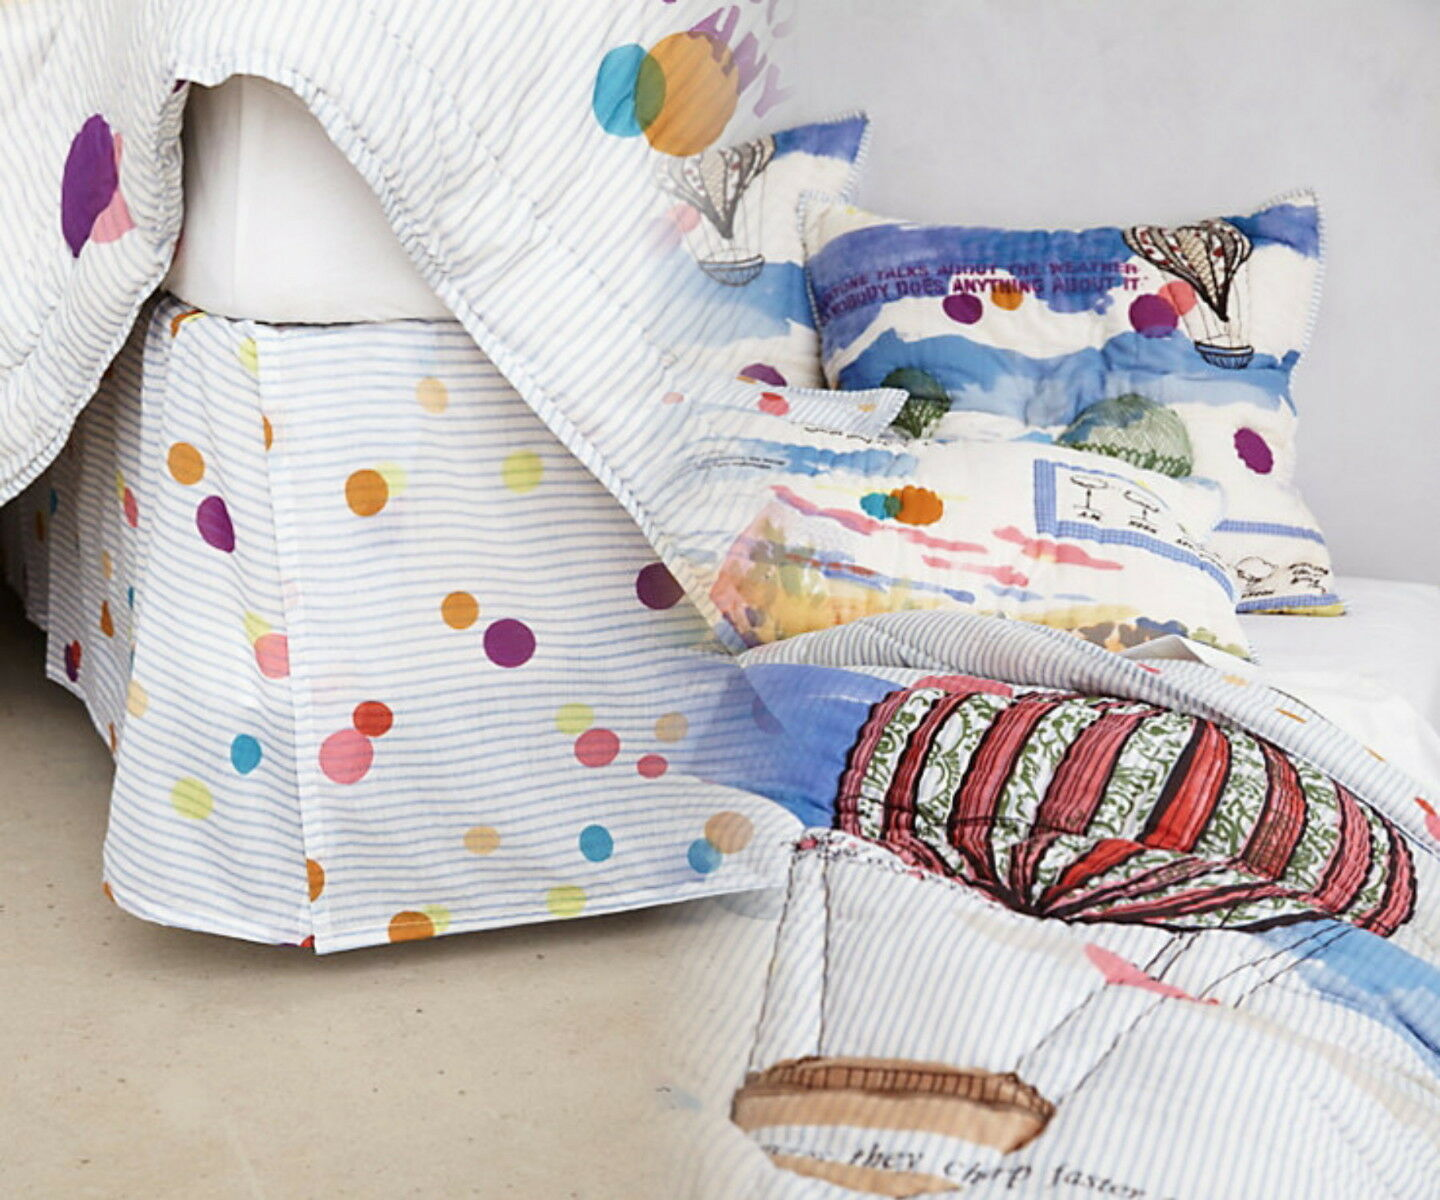 Anthropologie Petherton Full Bedskirt Cotton Whimsical Dots Cheerful English NWT